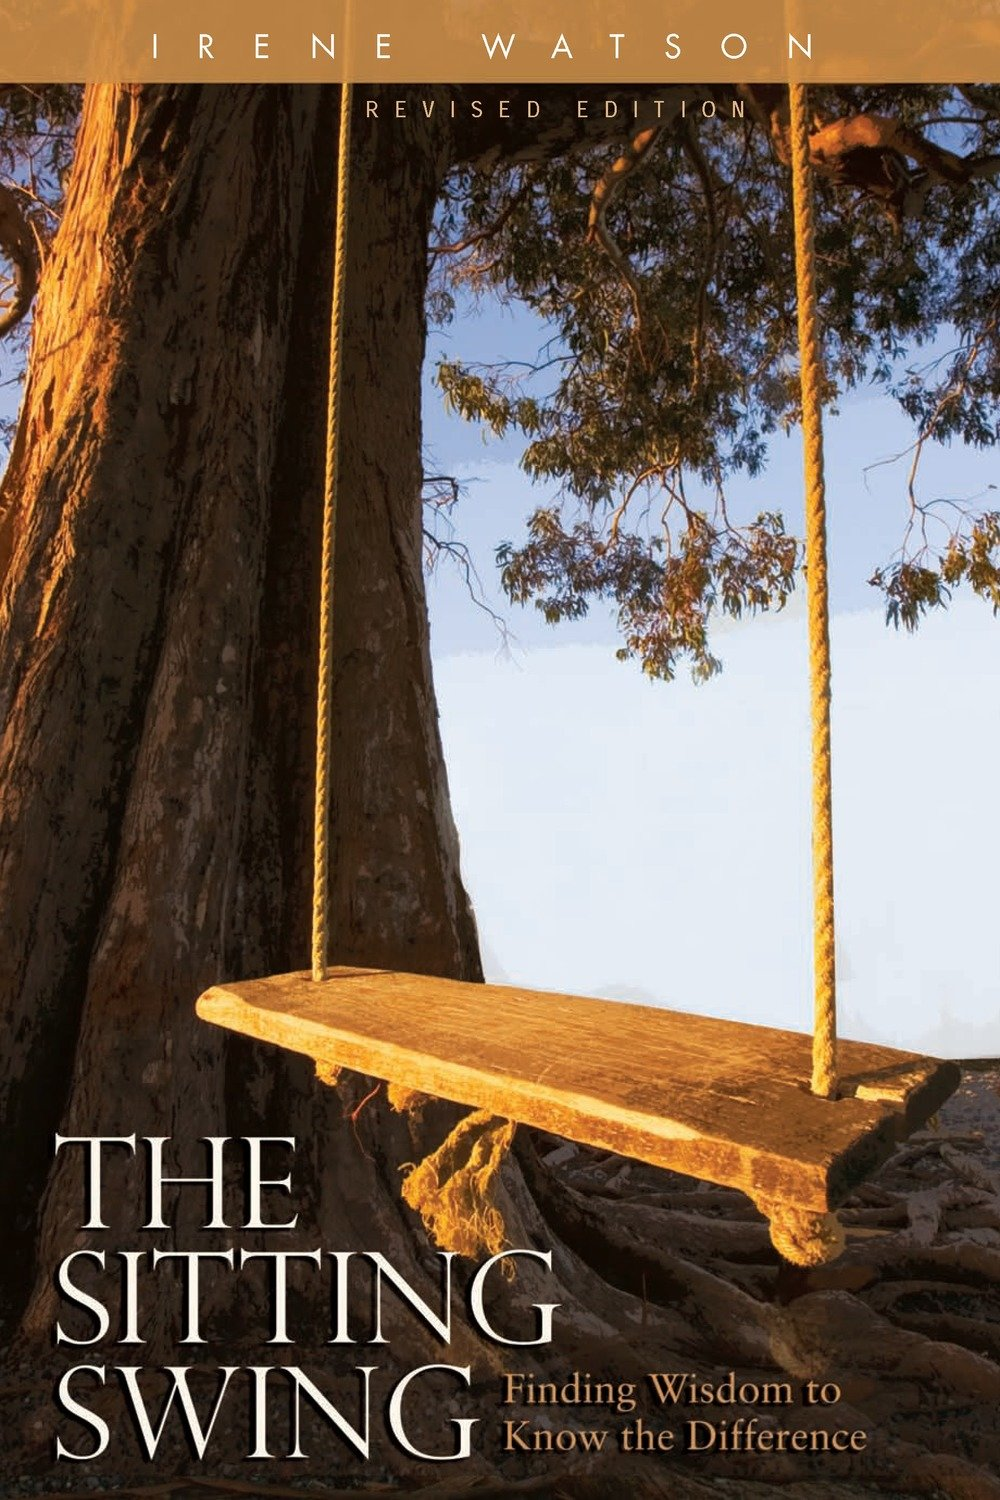 The Sitting Swing: Finding the Wisdom to Know the Difference